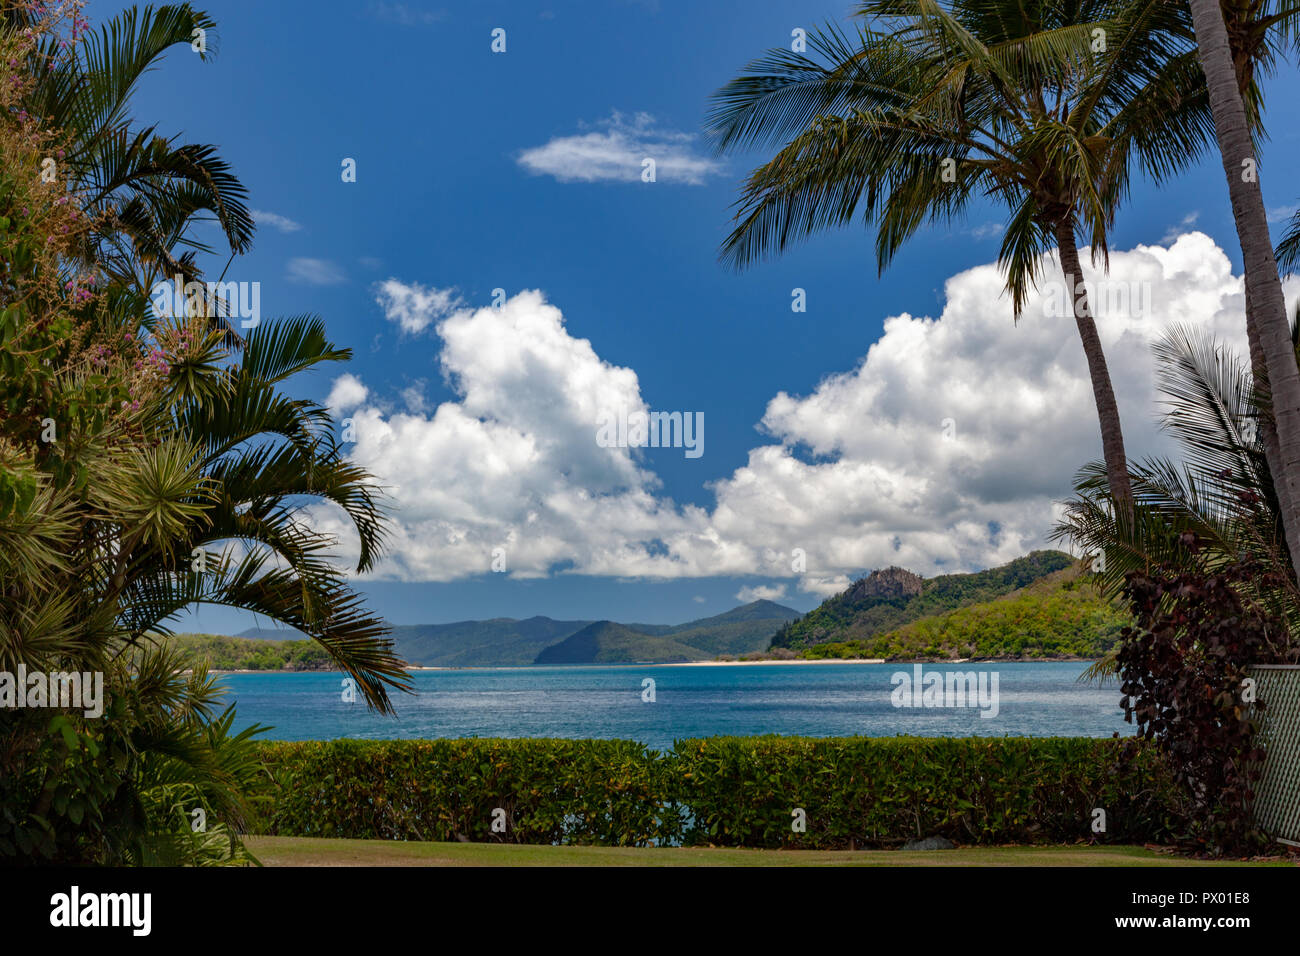 Blue skies, white fluffy clouds, palm trees, aqua, azure, yellow and bottle-green waters lapping the white coral sands of the Great Barrier Reef - Stock Image